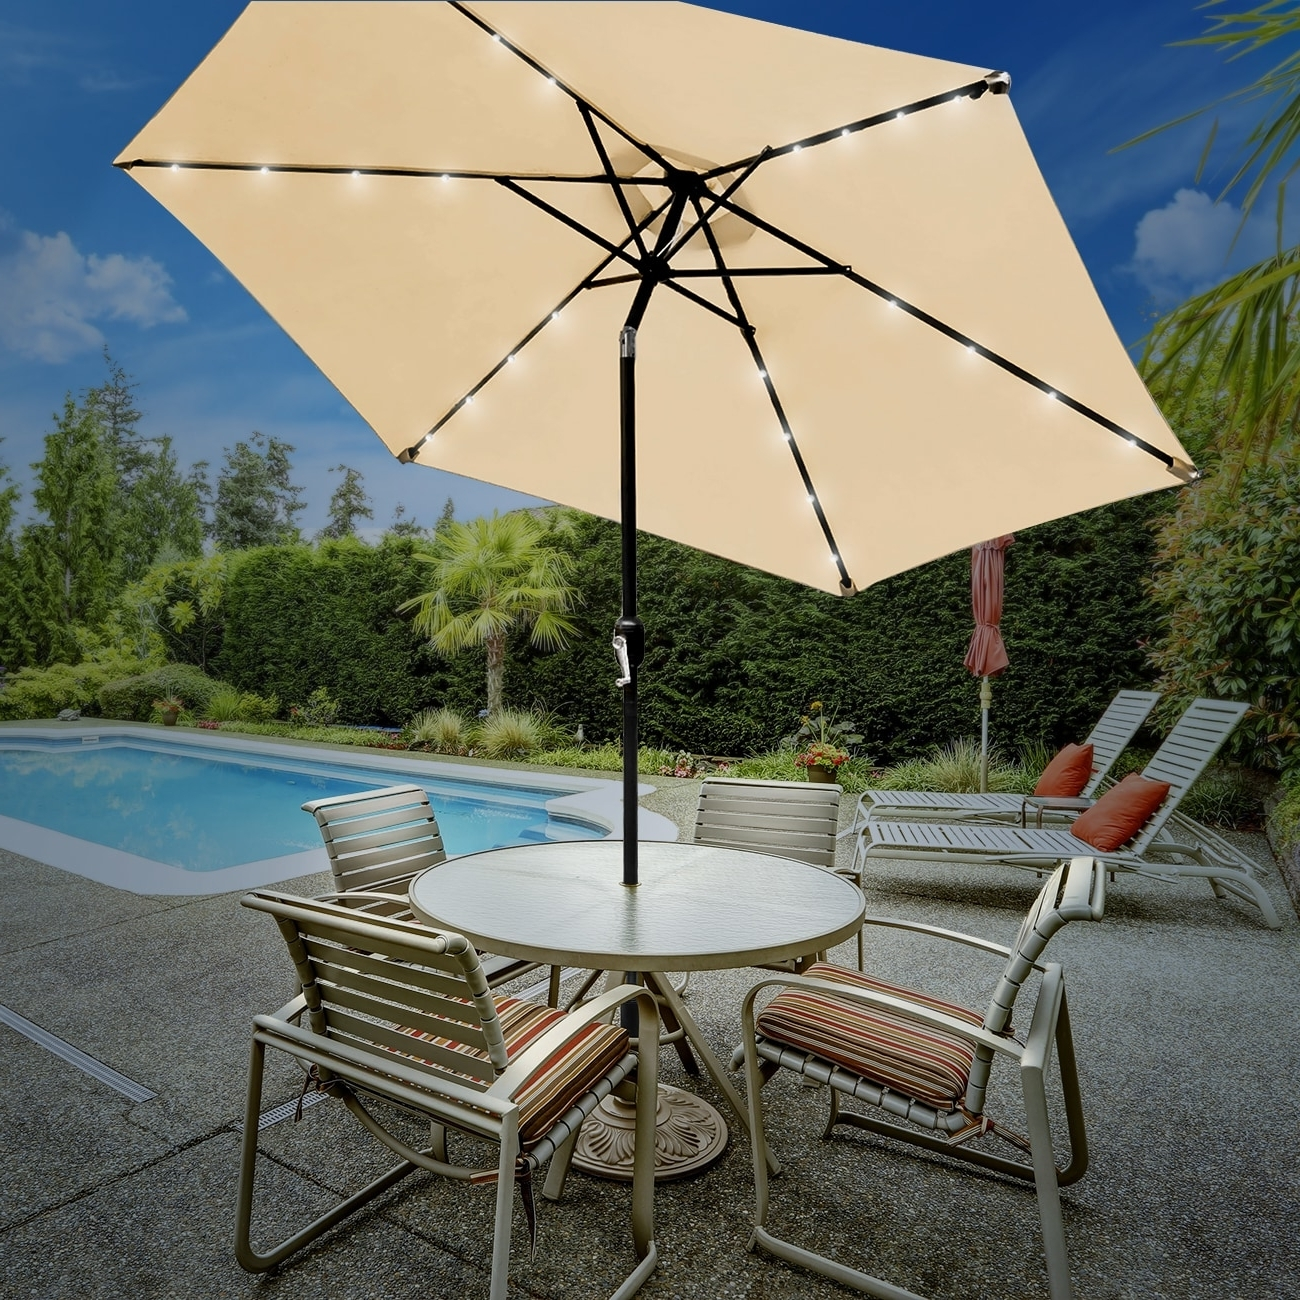 Shop Sorbus® Solar Led Outdoor Umbrella, 10 Ft Patio Umbrella With In Well Liked Gold Coast Patio Umbrellas (View 14 of 20)